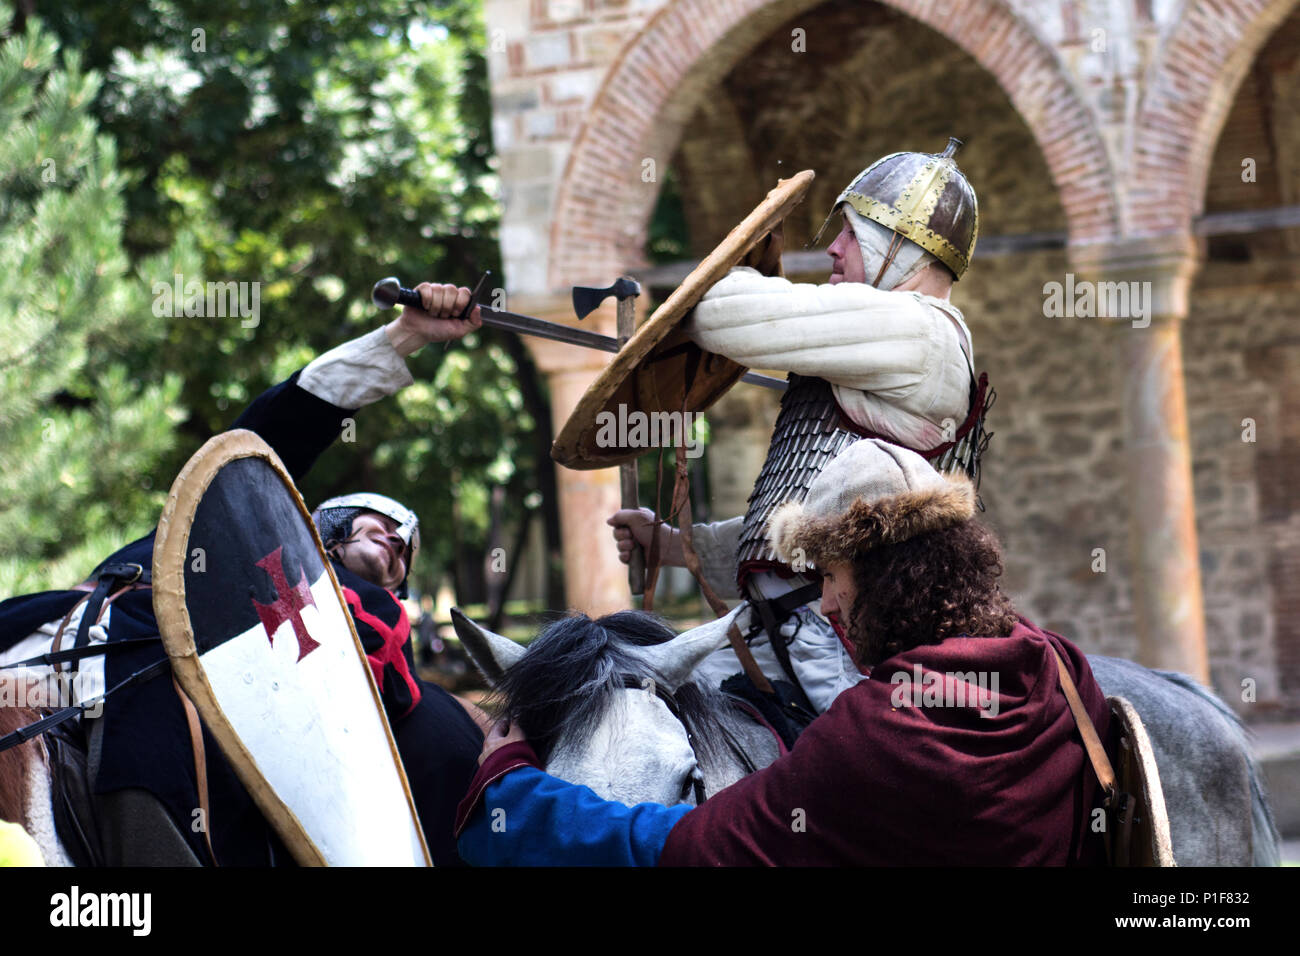 Nis, Serbia - June 10, 2018: Medieval knight battle on horse with swords and armor. Middle ages fight concept Stock Photo